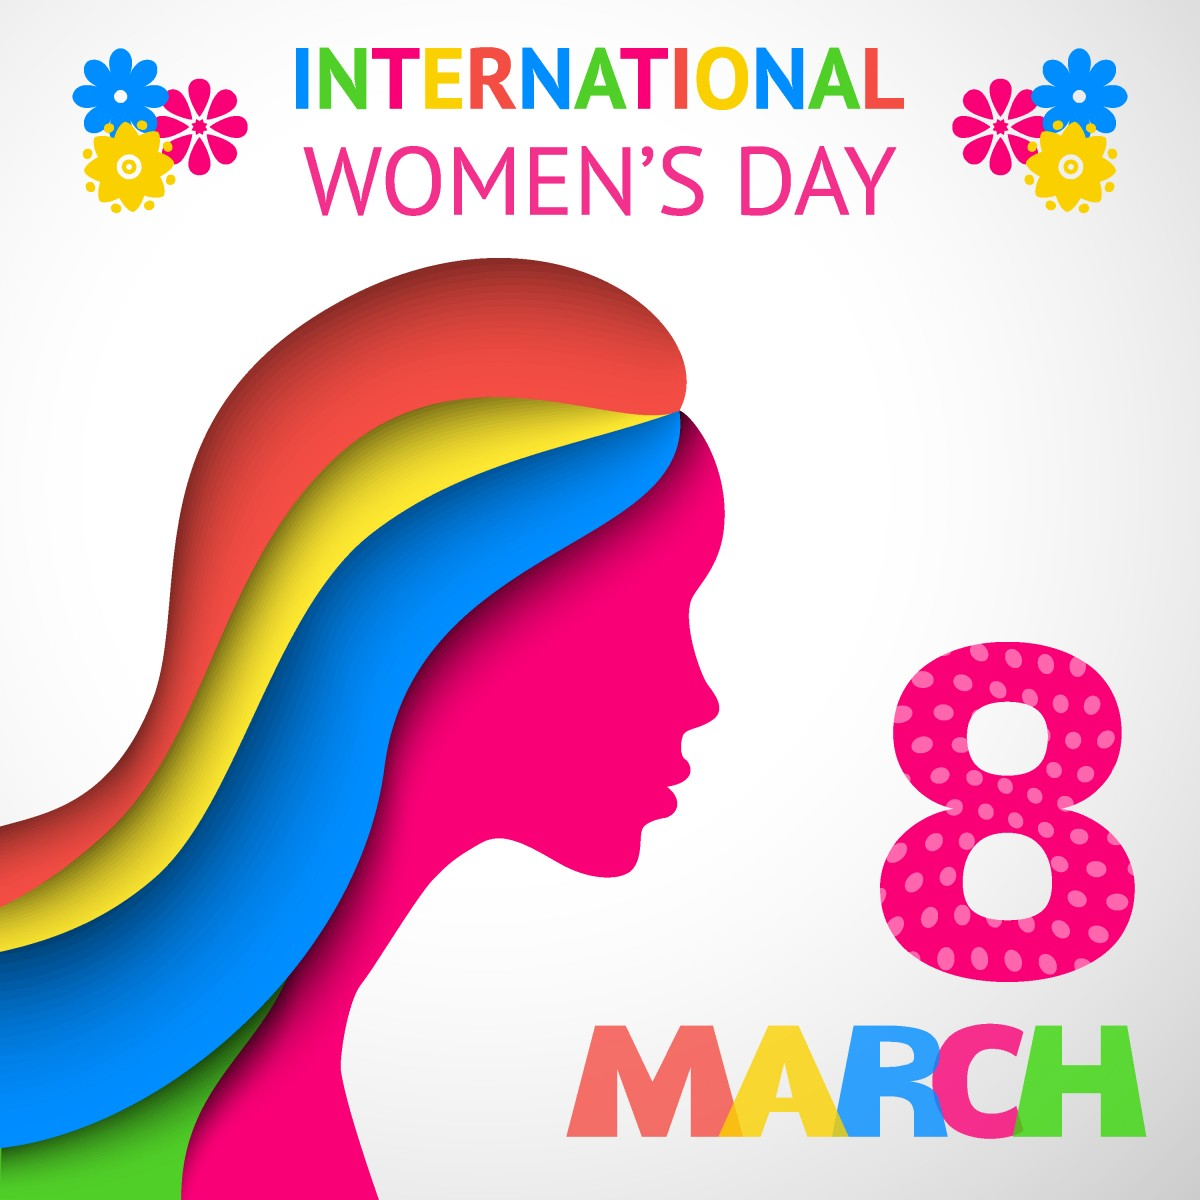 Celebrating International Women's Day.